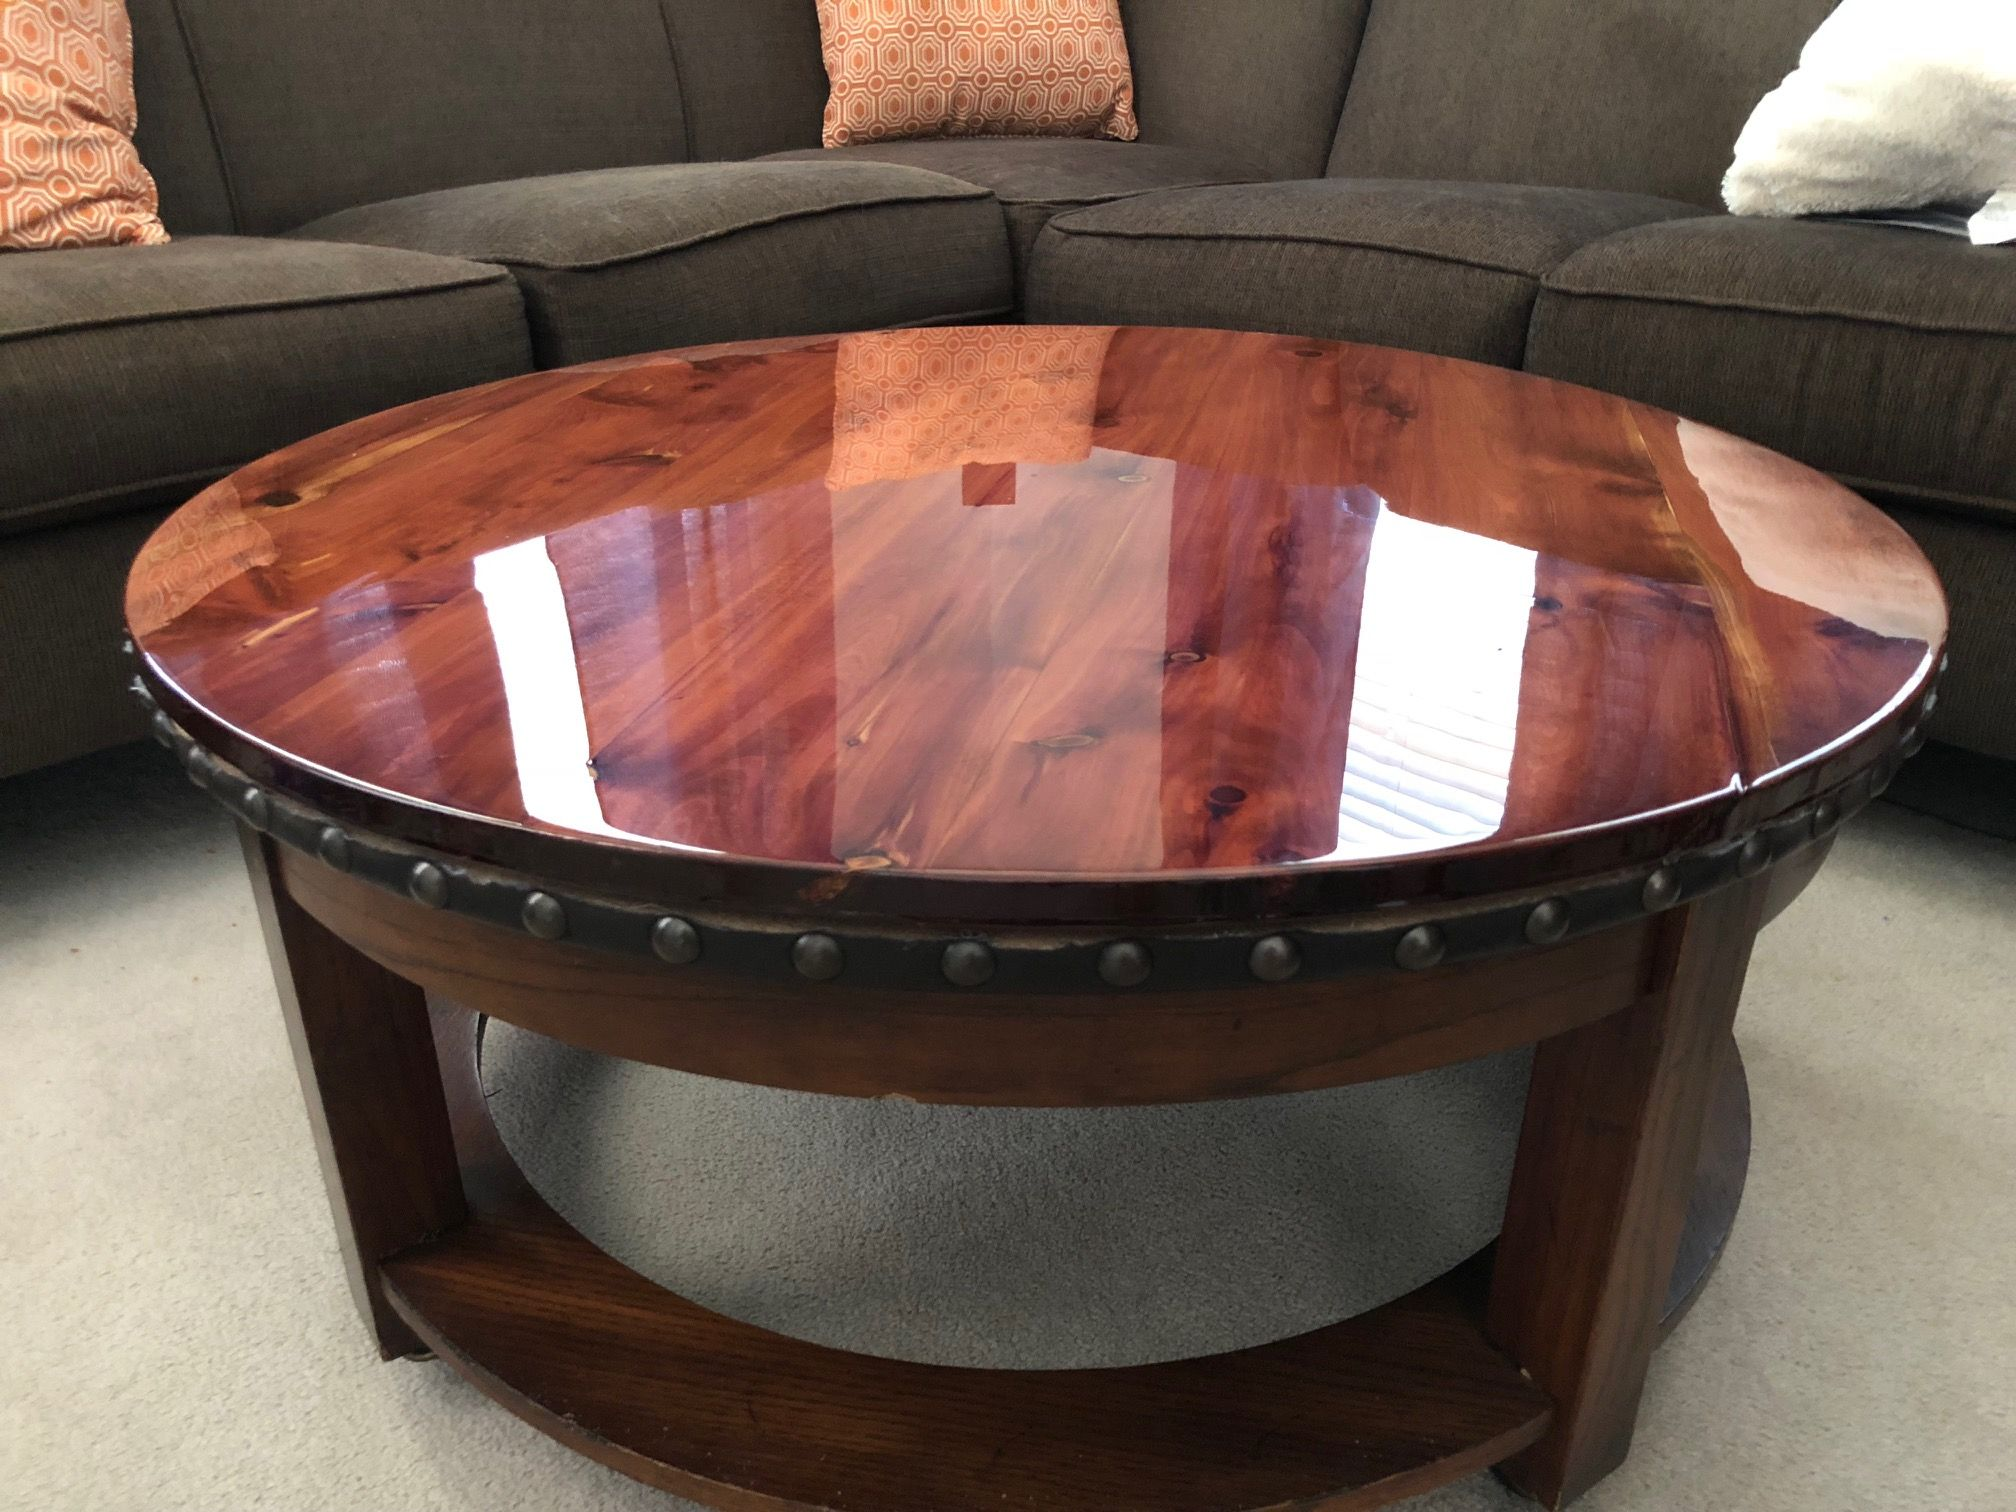 Round Rolling Western Cedar Footstool Coffee Table 36 Diameter Supremely Glossy Epoxy Finish And Bea Footstool Coffee Table Hand Crafted Furniture Furniture [ jpg ]